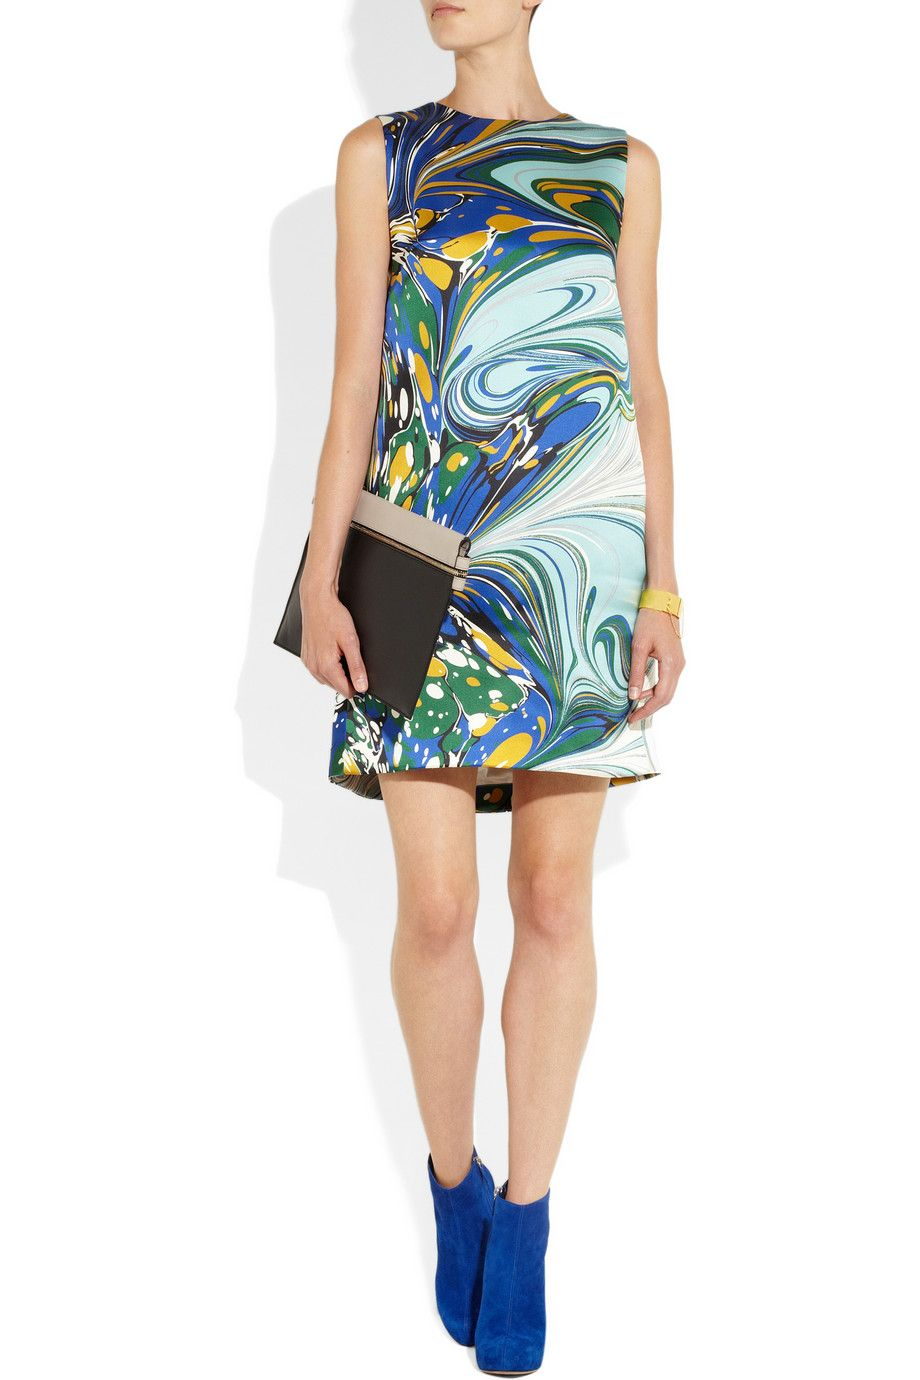 Barton printed silk-satin dress | Stella McCartney | THE OUTNET